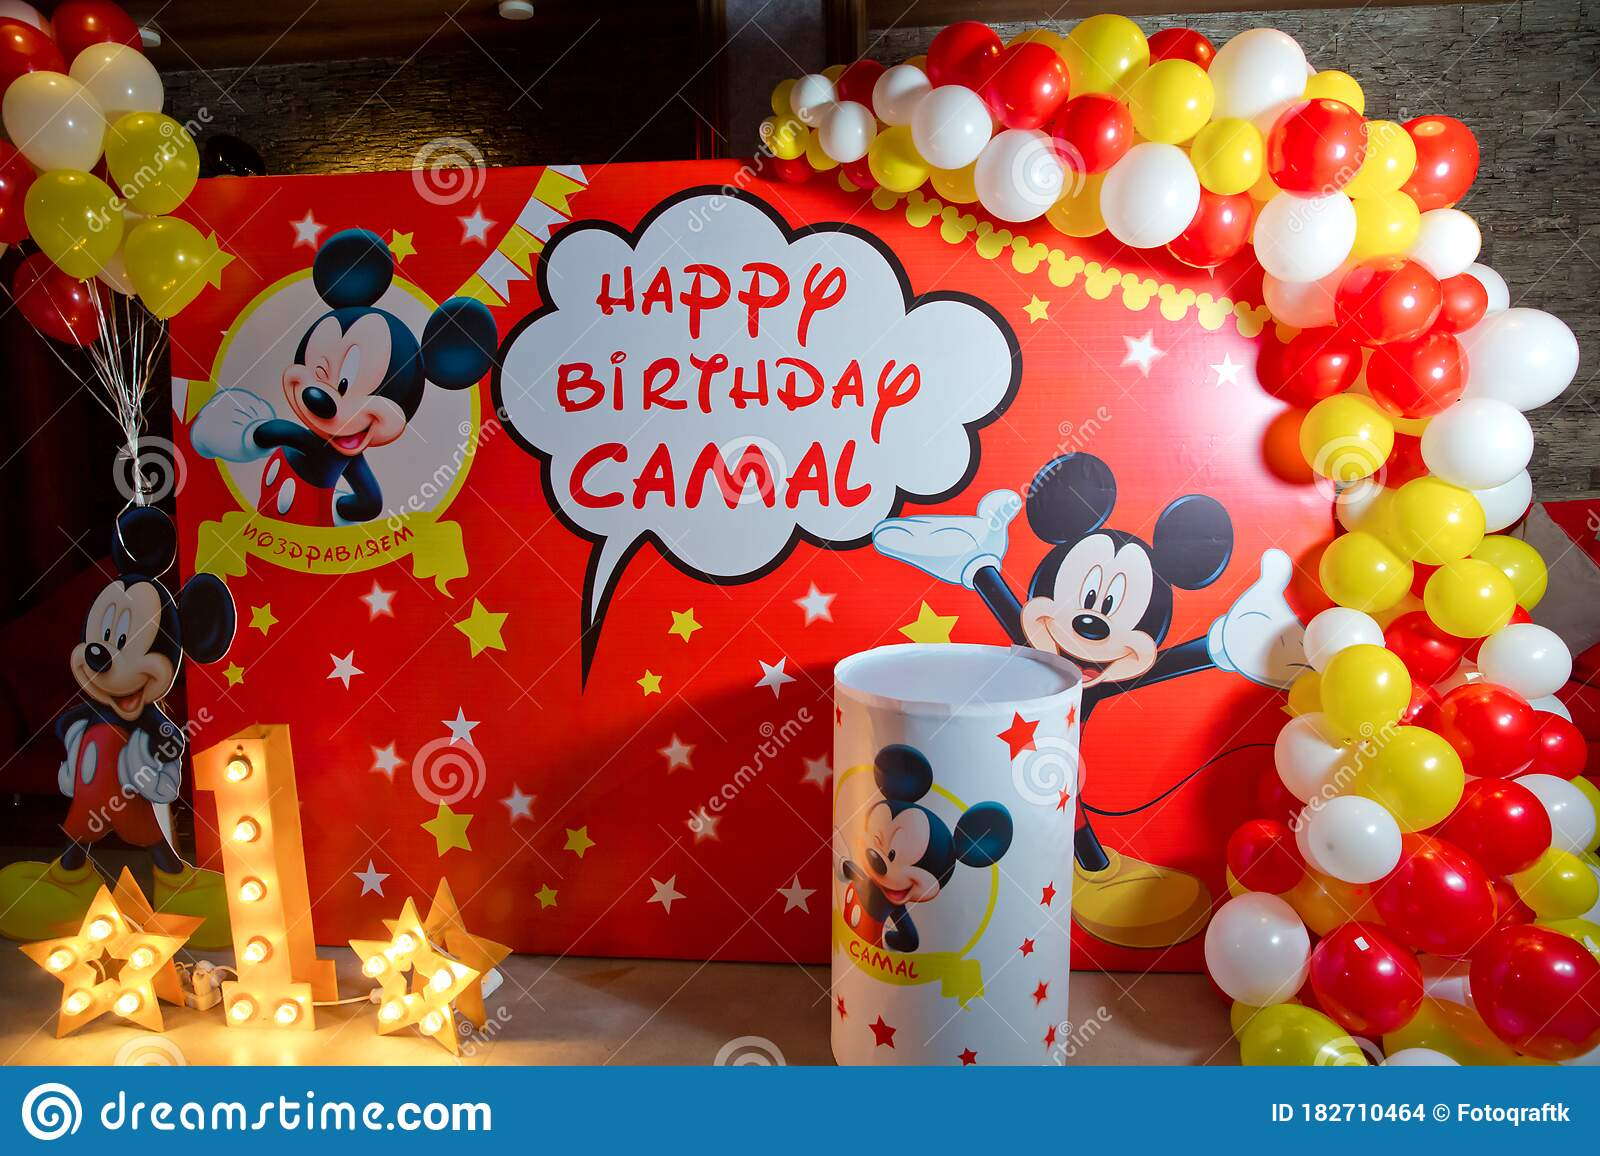 530 Mickey Mouse Birthday Photos Free Royalty Free Stock Photos From Dreamstime